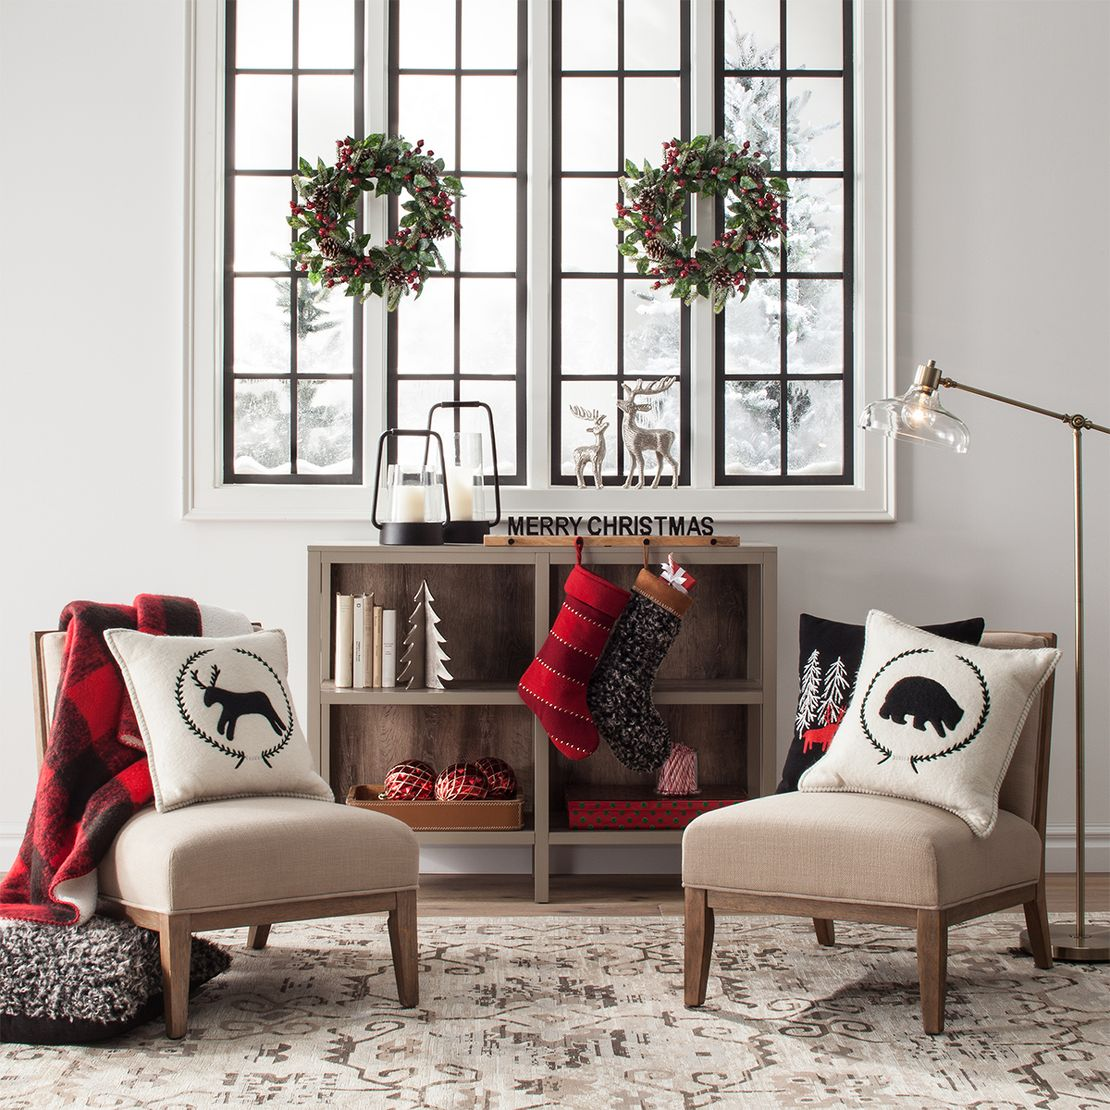 Find Cheap Indoor Christmas Decorations: Home Decor : Target